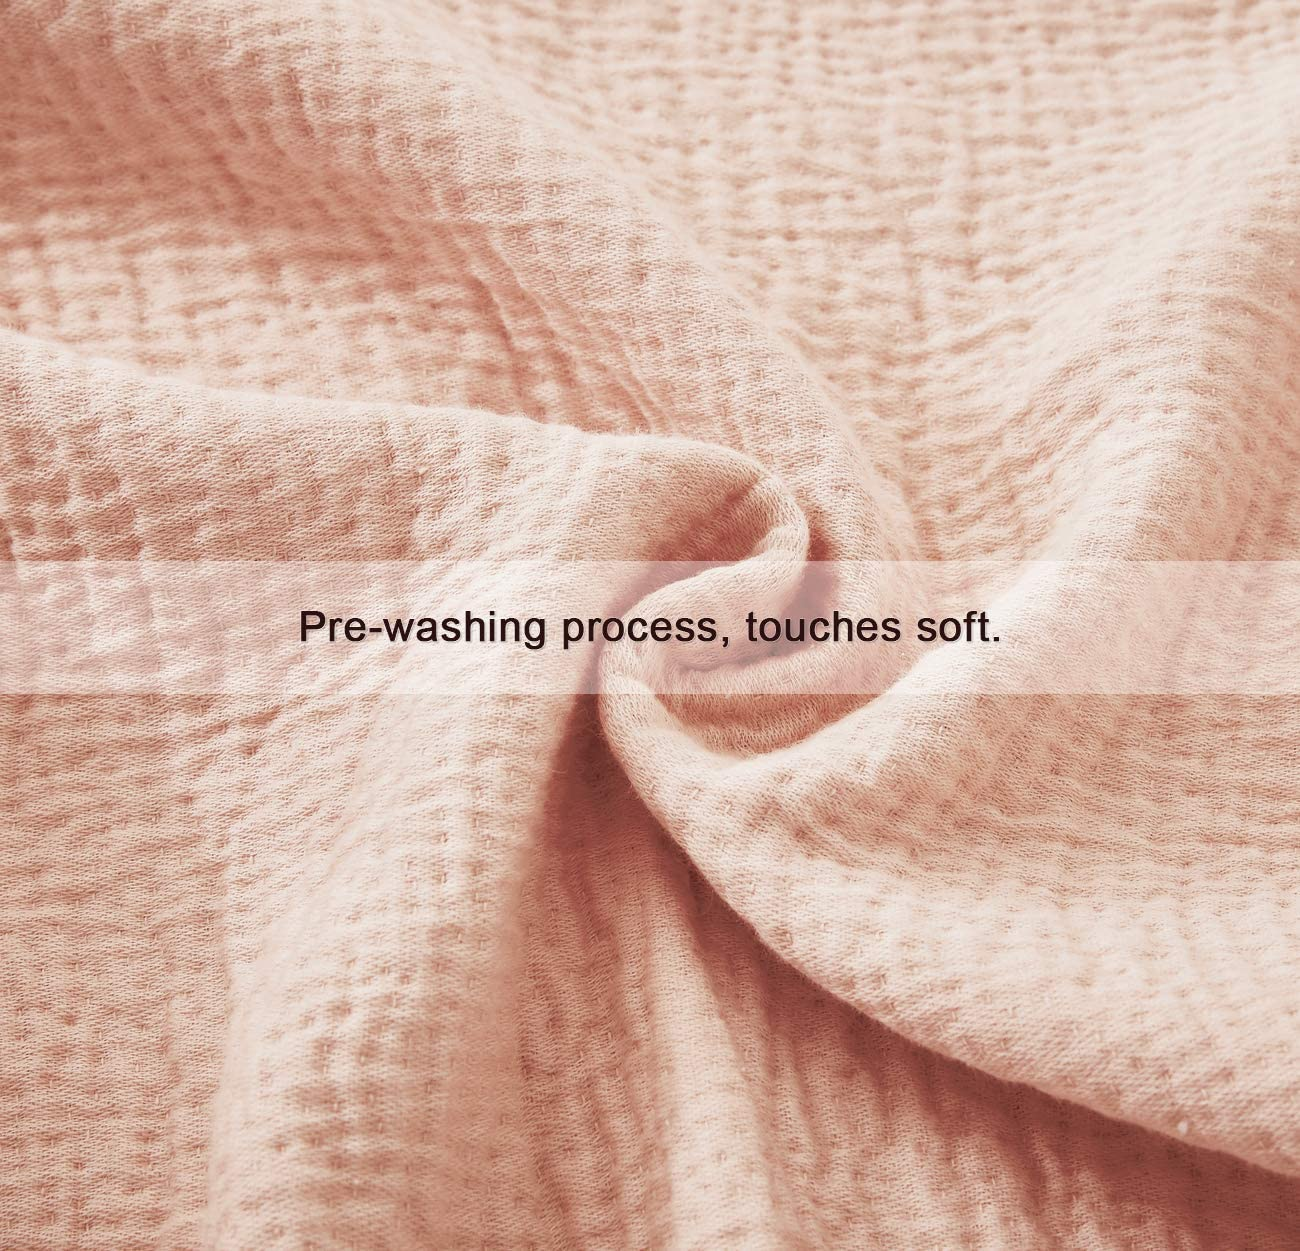 Soft Skin-Friendly Breathable and Lightweight Perfect for Home Decoration Couch Bed Sofa for All Season Dark Grey PHF 100/% Cotton 4 Layer Adult Muslin Blanket Twin Size 66 x 90